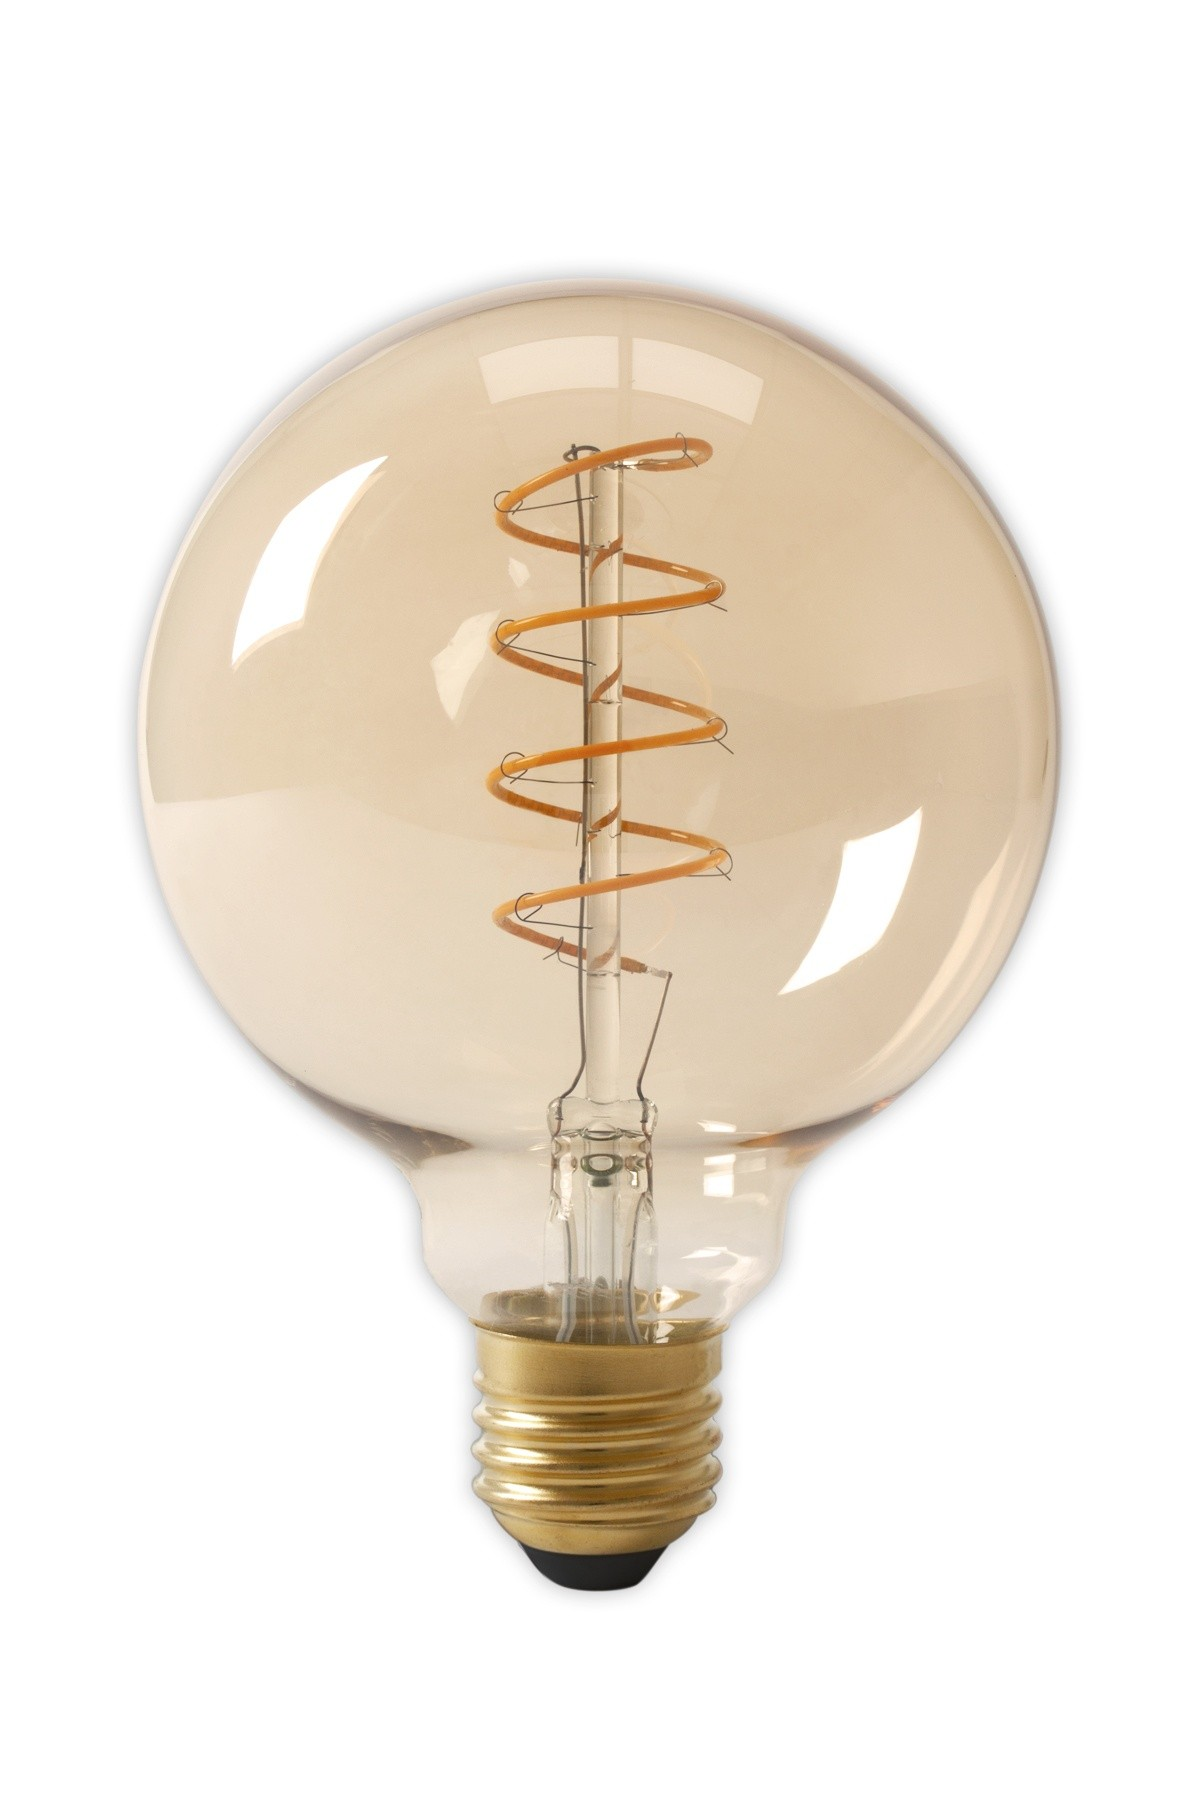 Led bulbs globe led bulbs filament led bulbs rgb led bulbs e27 flex led dimbare filament globelamp gold 4w 200lm e27 glb125 kooldraad look parisarafo Gallery